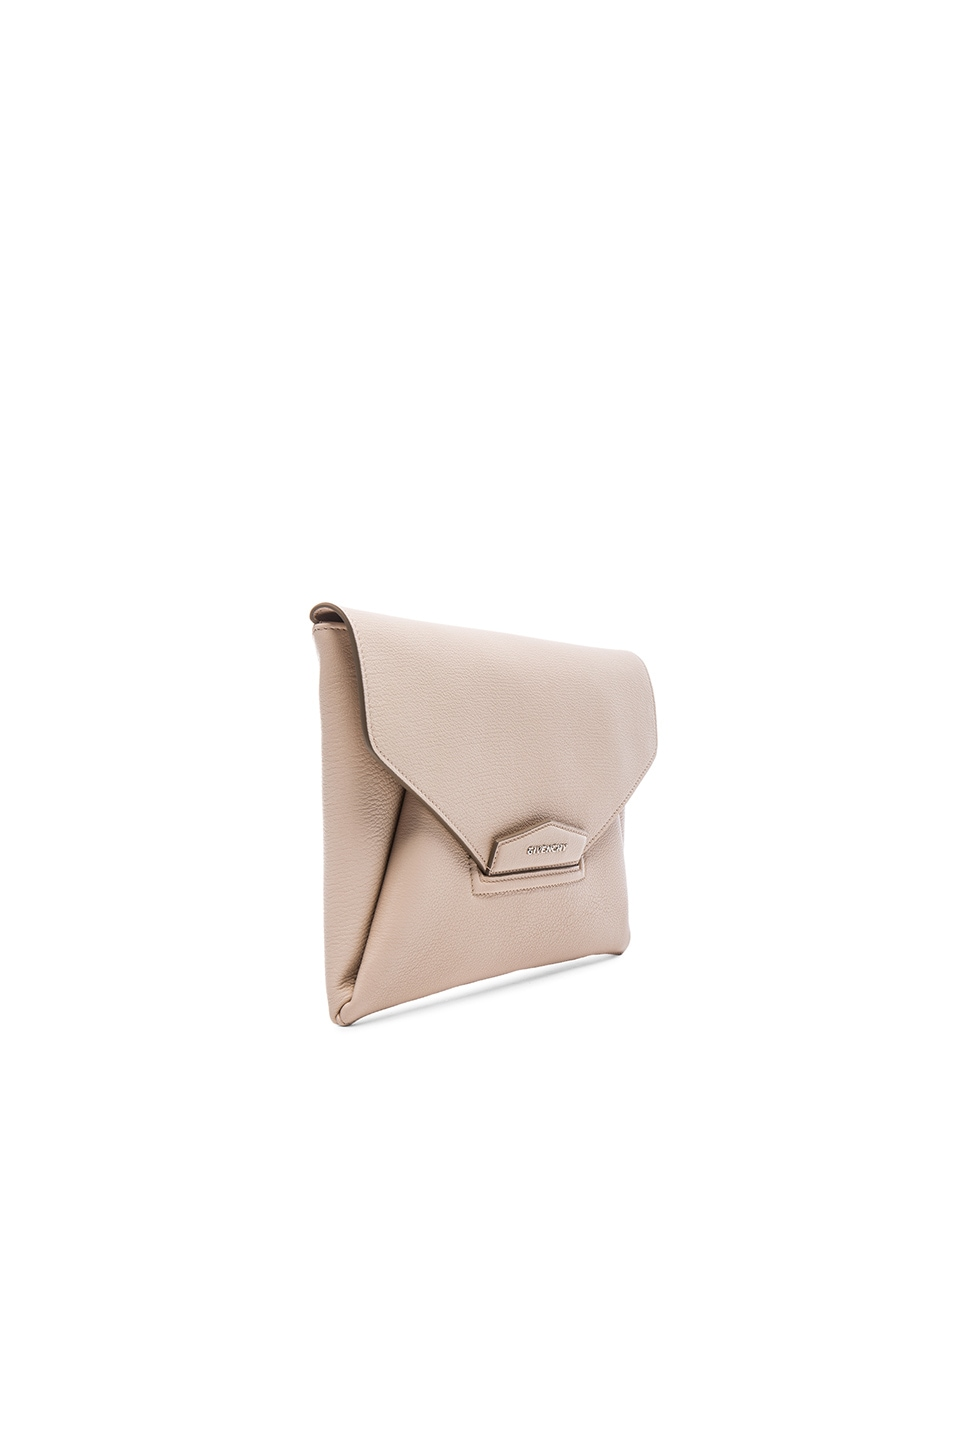 Image 4 of Givenchy Medium Antigona Envelope Clutch in Nude Pink